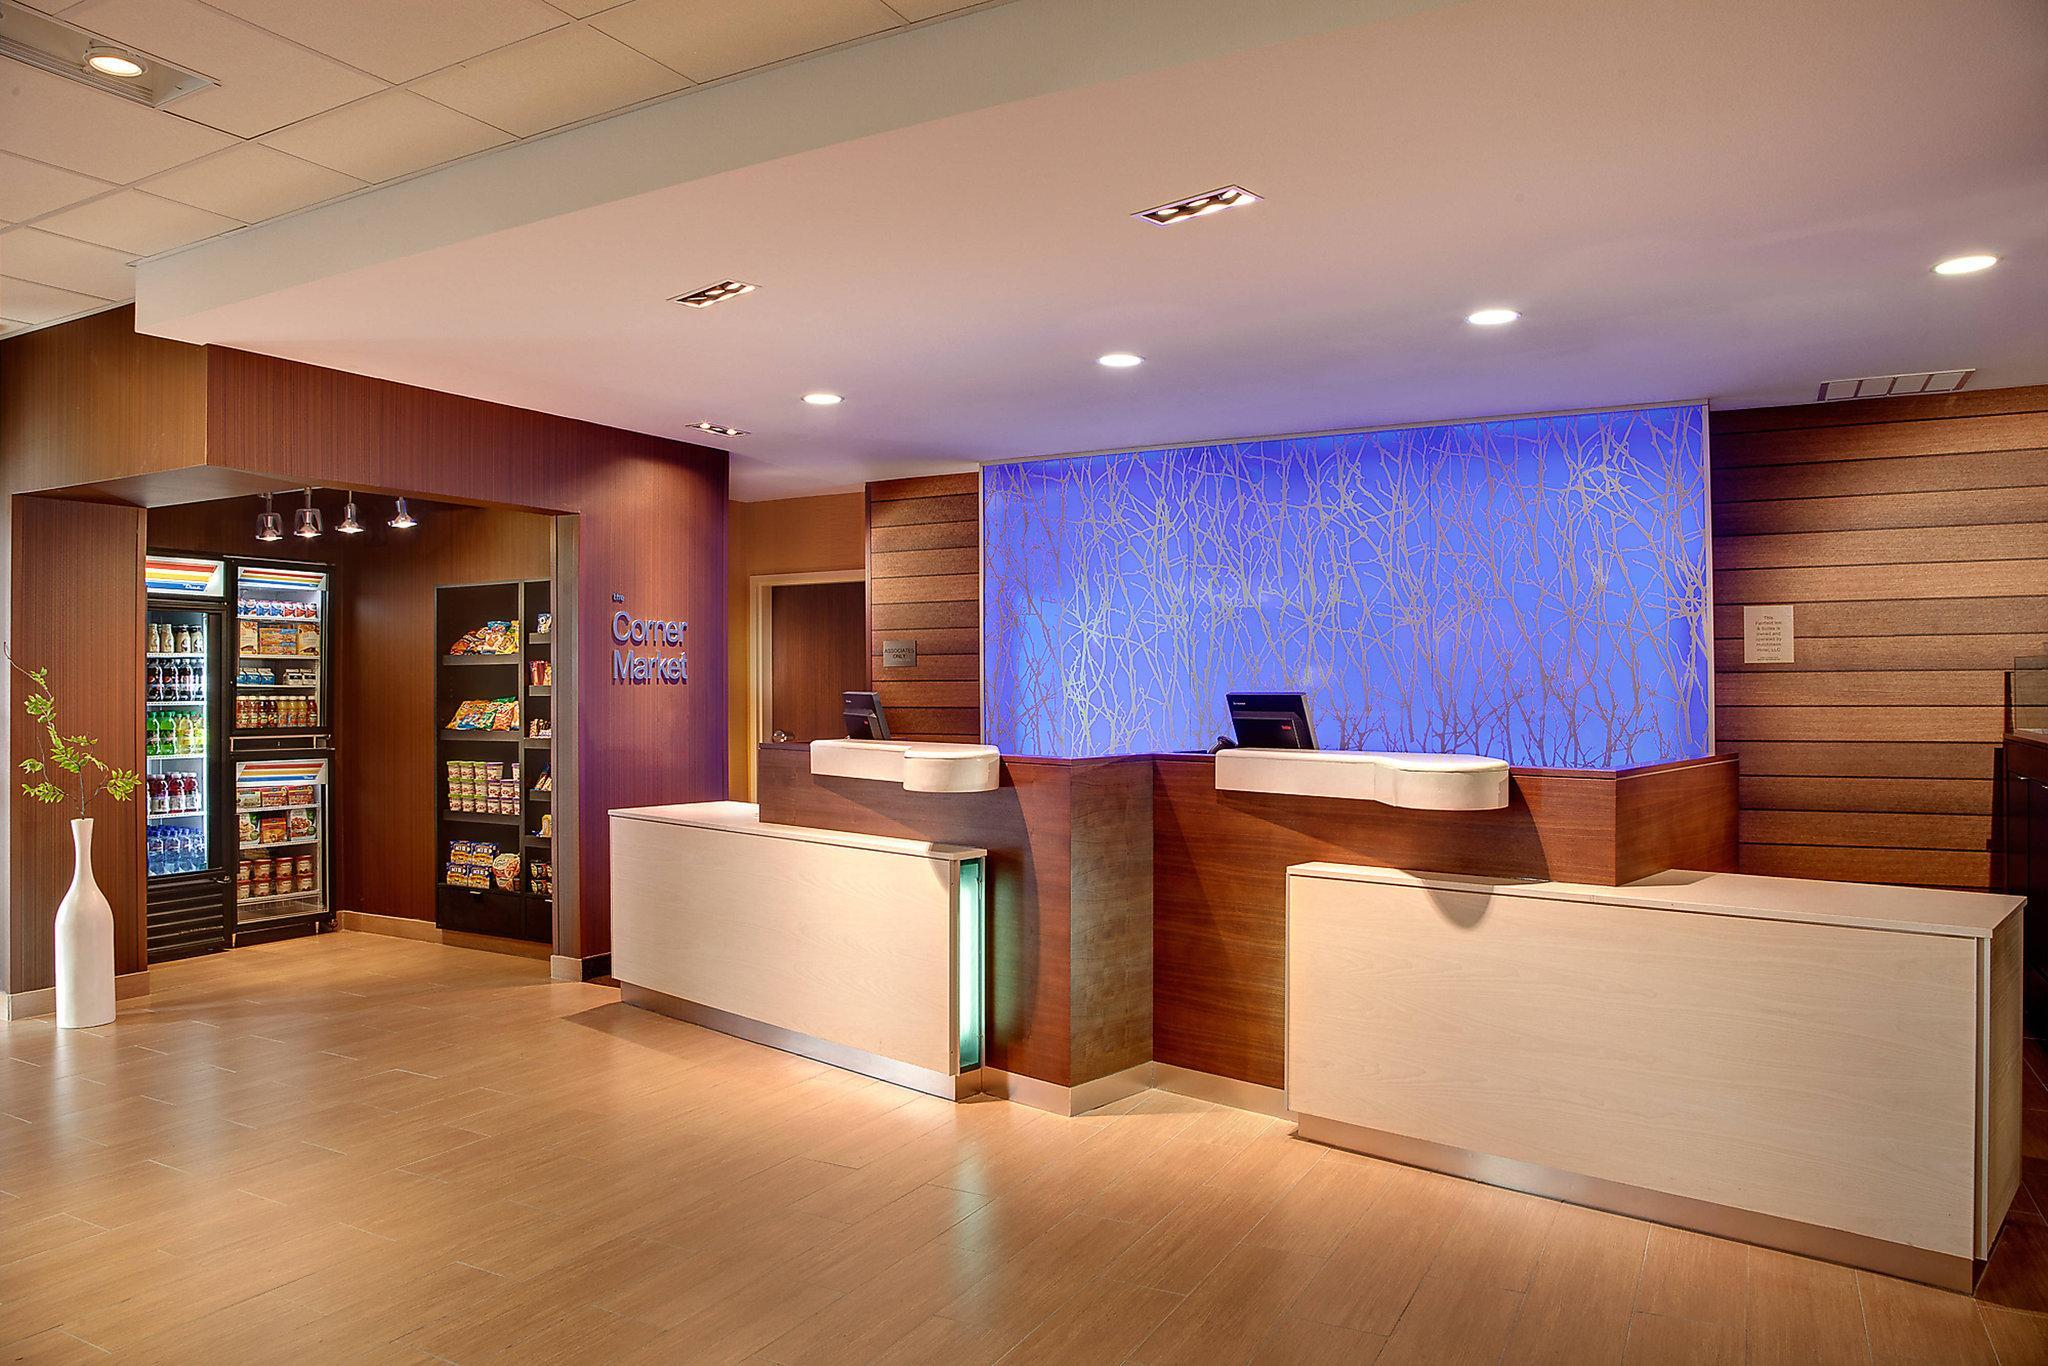 Fairfield Inn and Suites New York Staten Island